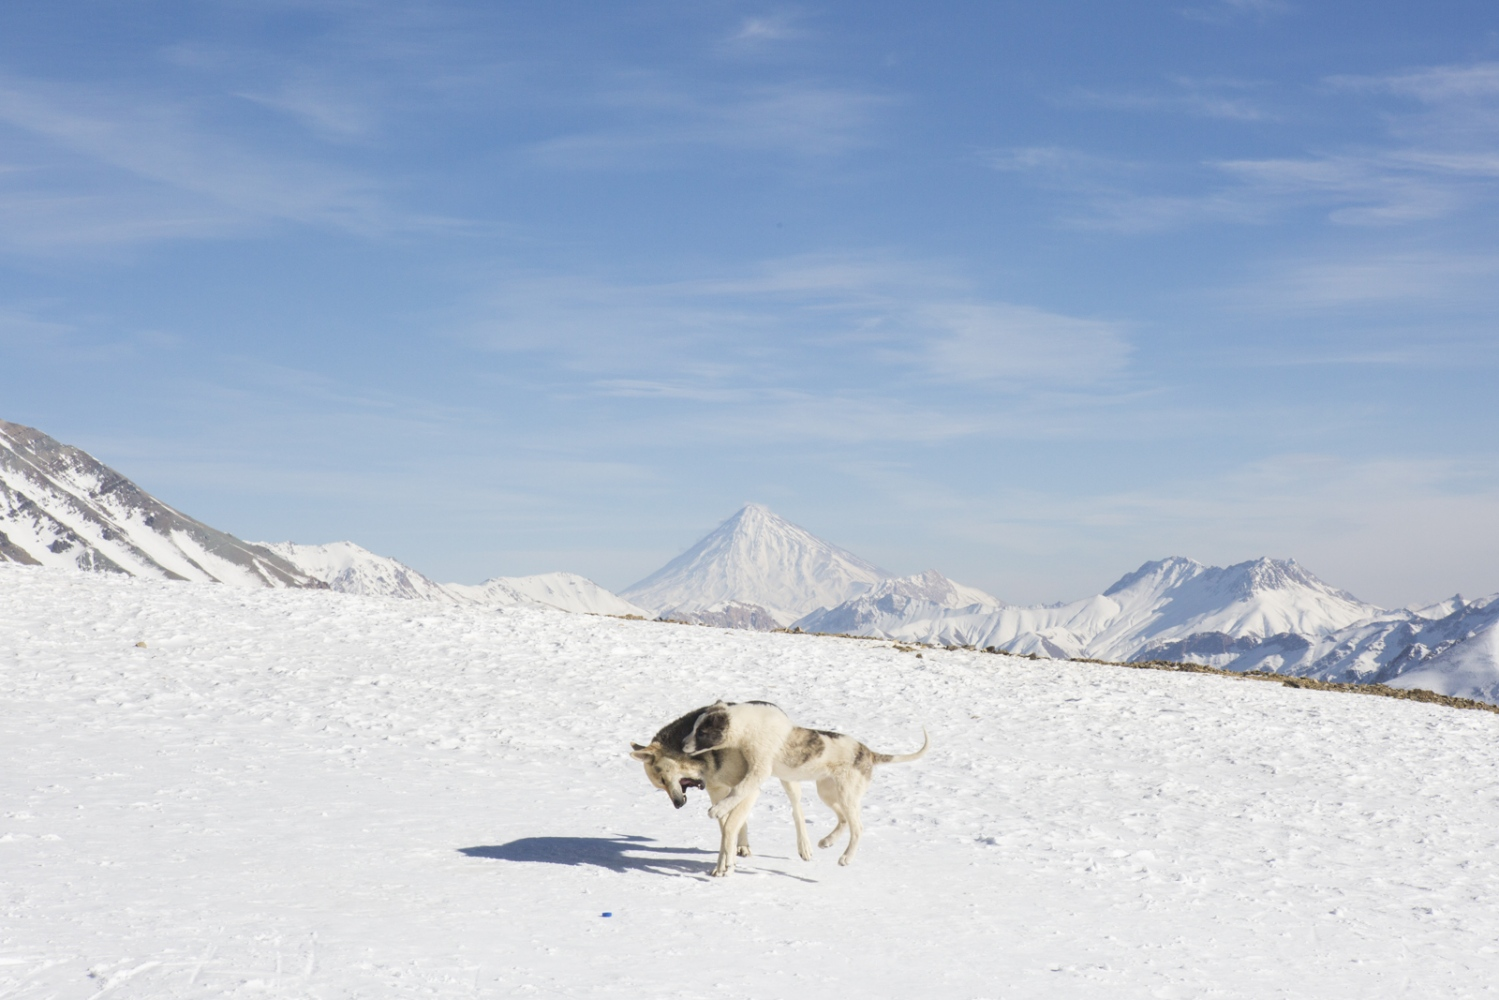 Wild dogs fight on the slopes of Darbandsar in front of Mount Damavand, the highest volcano in Asia, a national pride that takes on a prominent role in Zoroastrian mythology. Alborz Mountains, North of Tehran. January 03, 2015